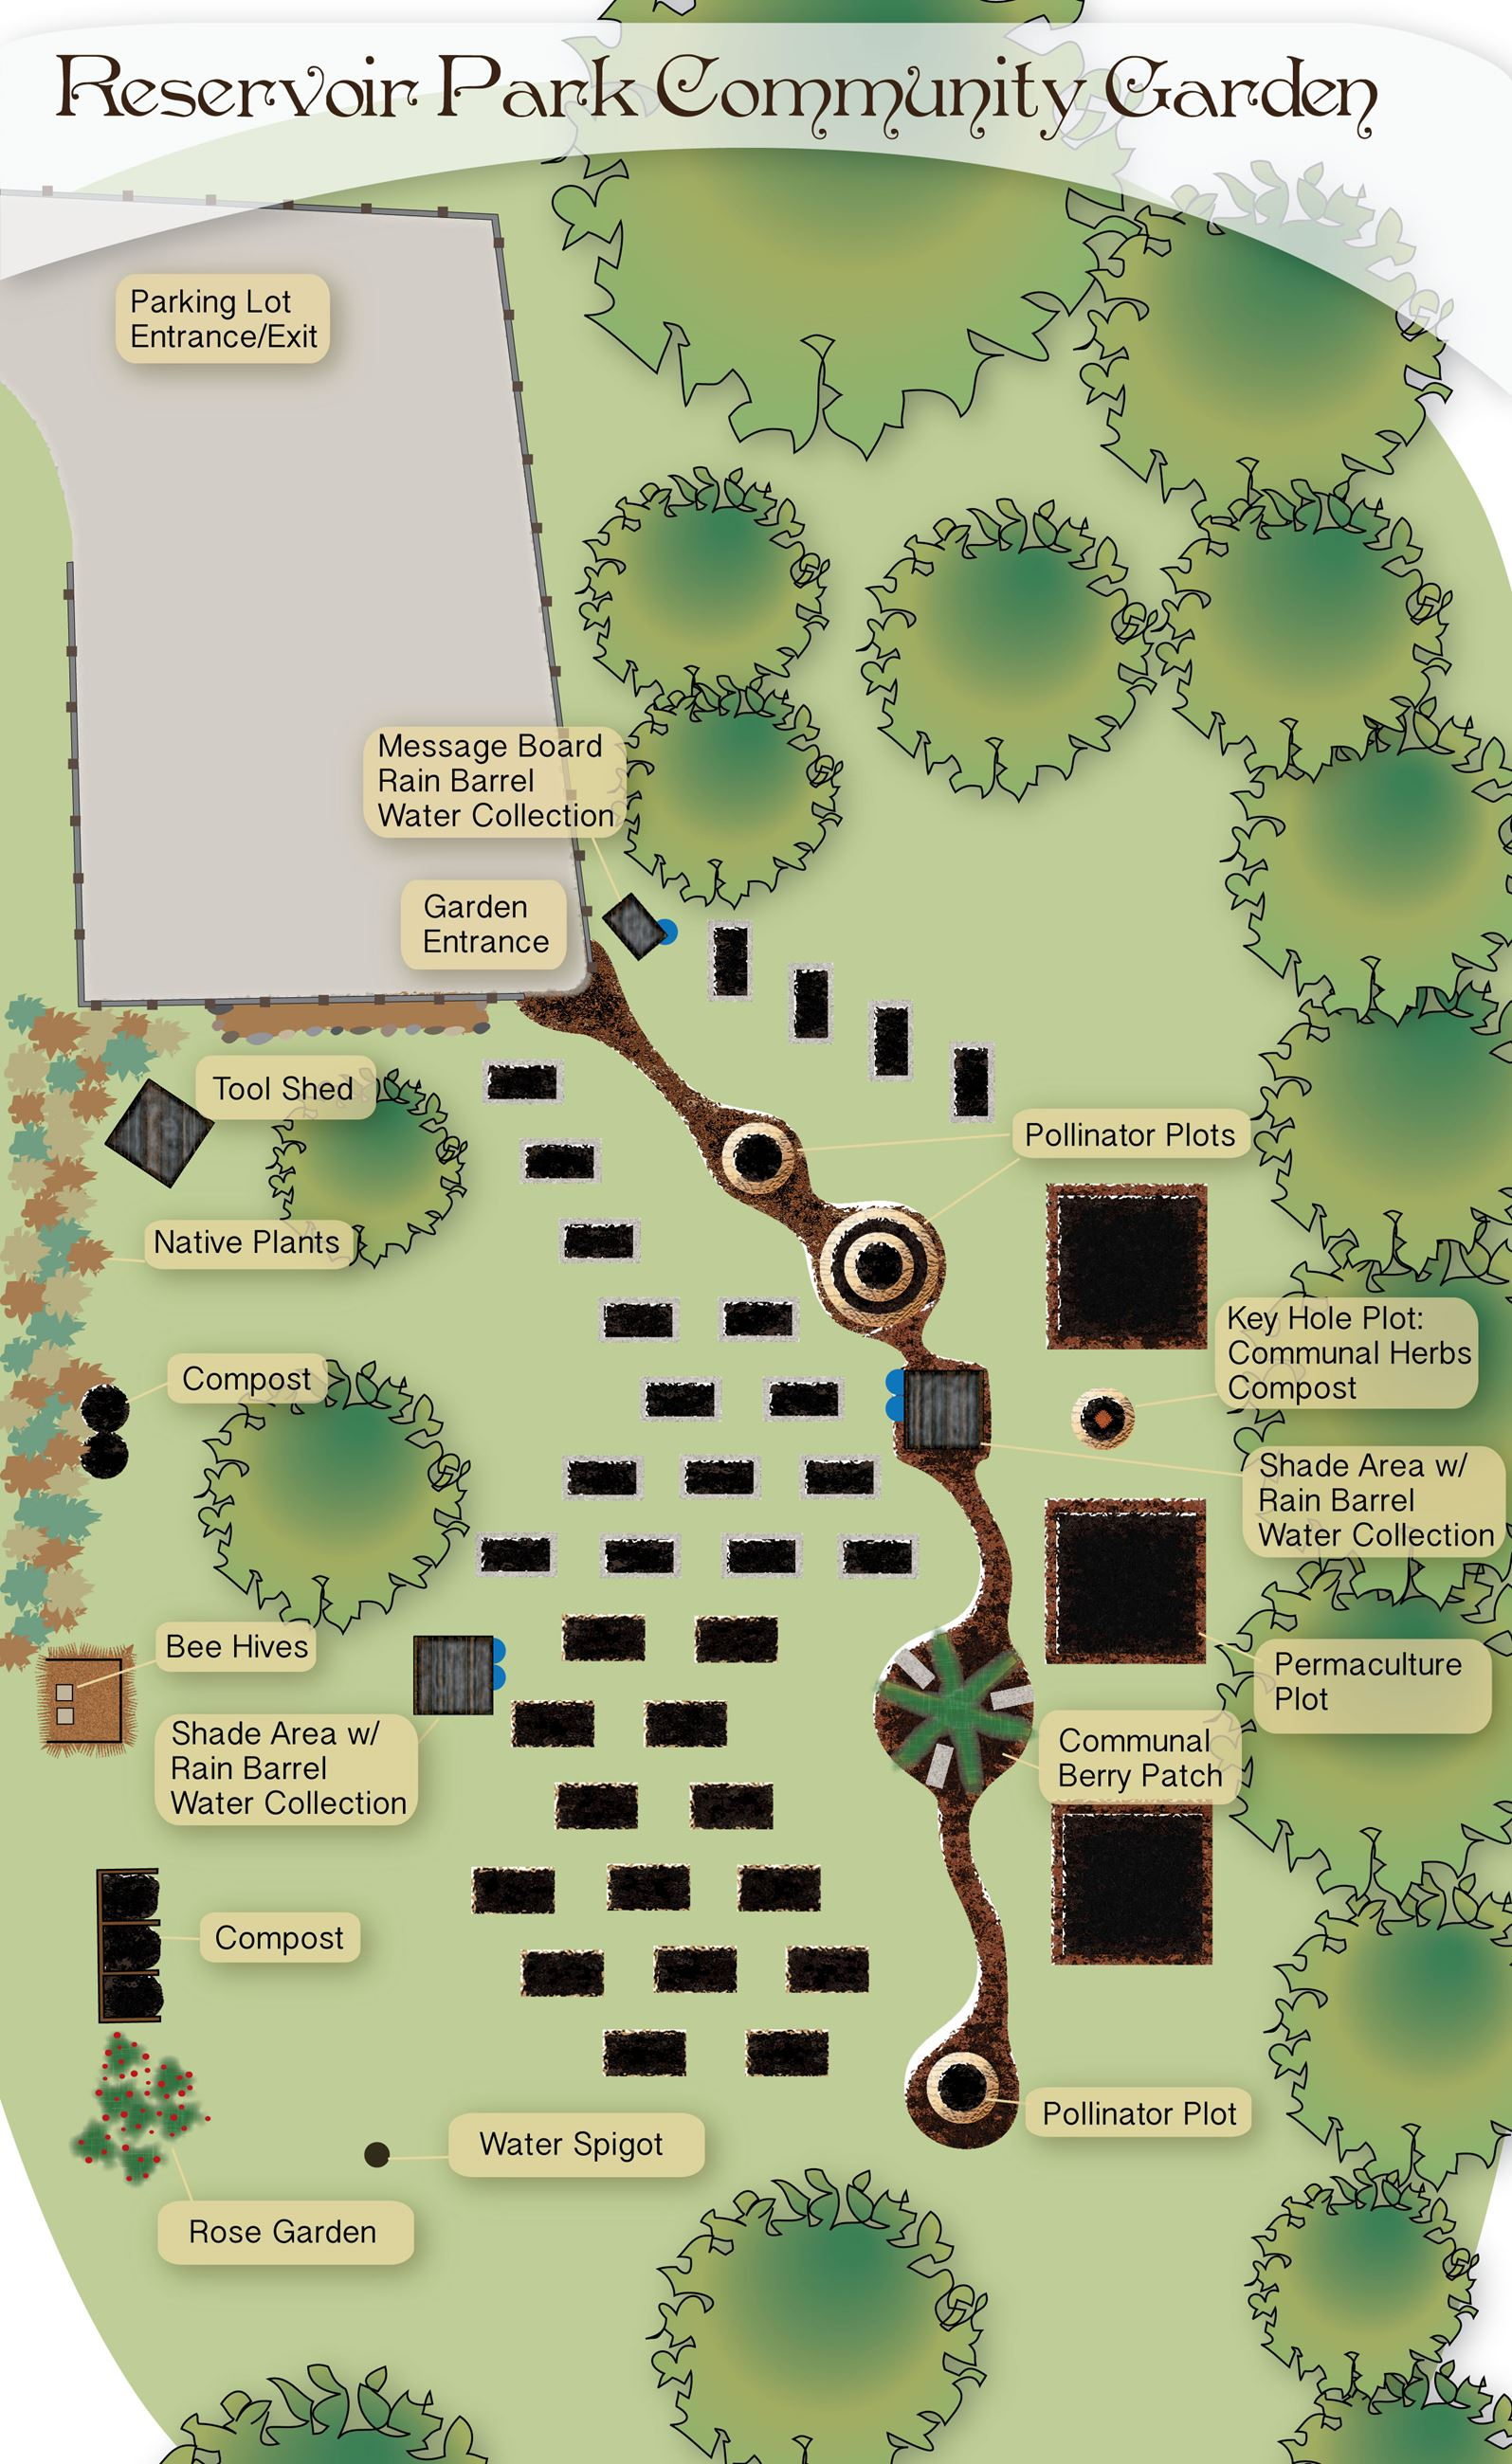 Community Garden Diagram (JPG) Opens in new window